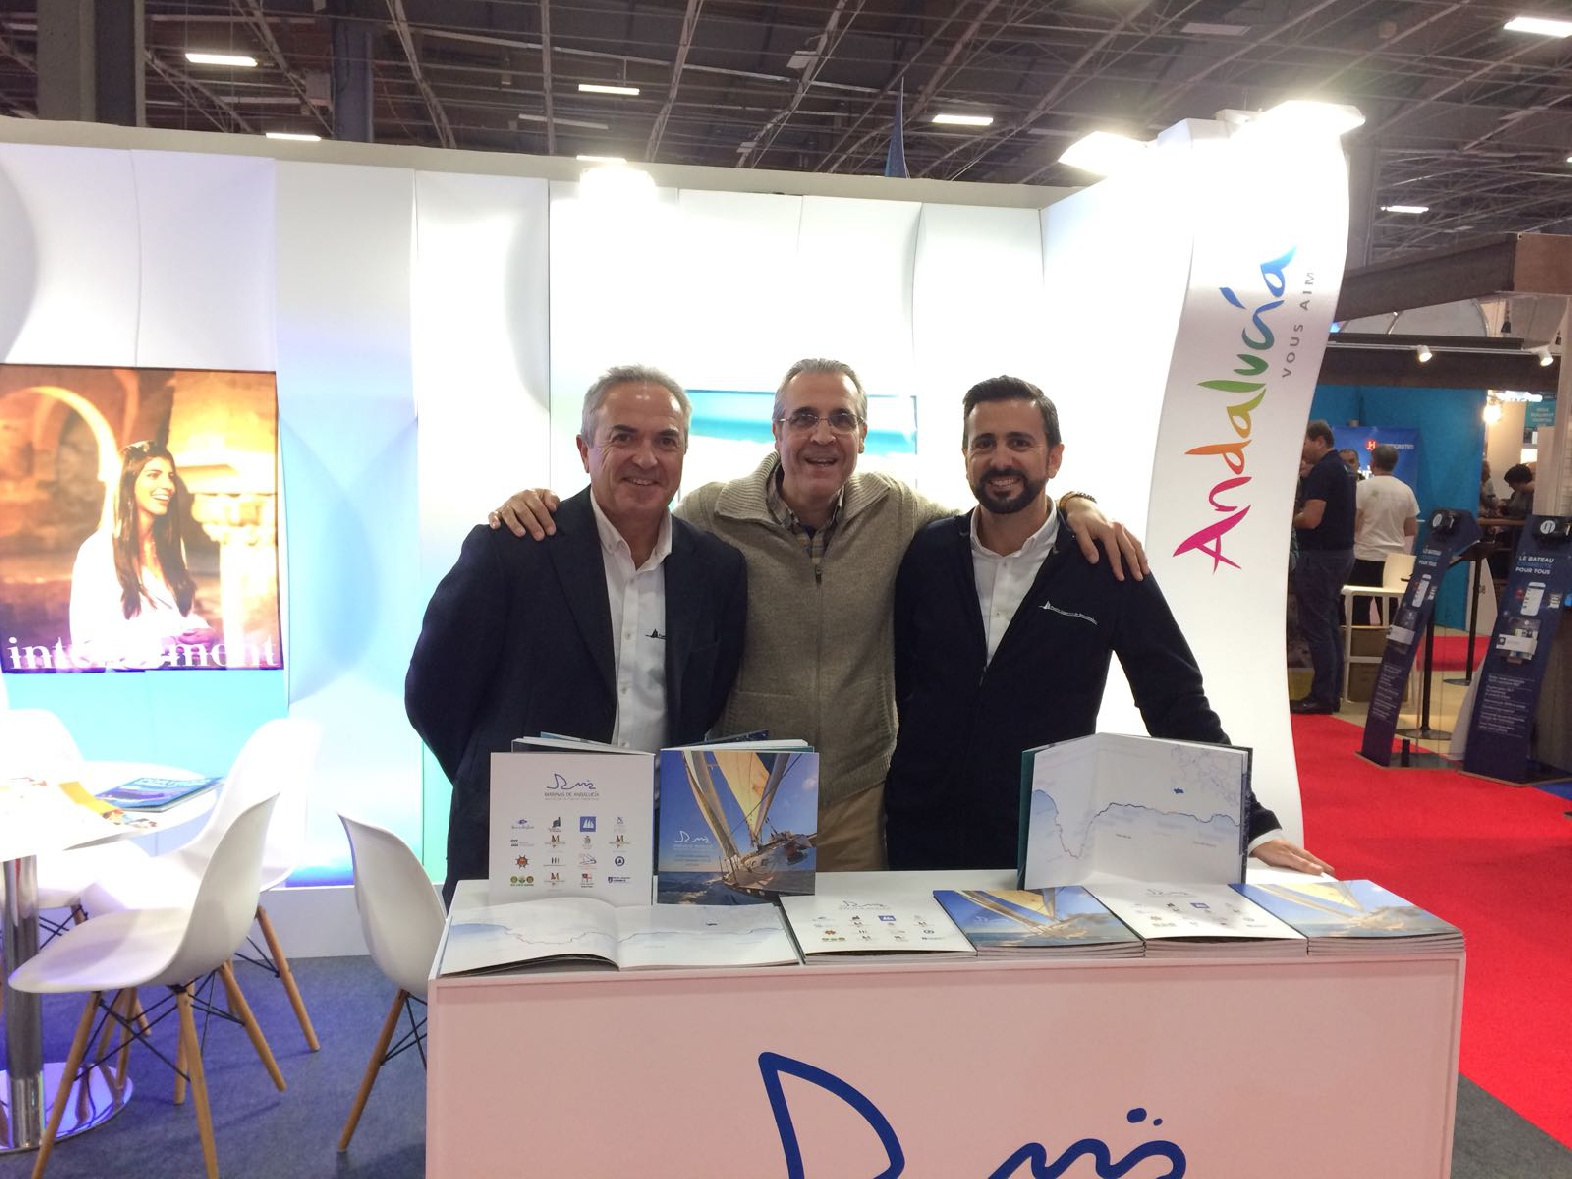 Andalusian ports are promoted at the Salon Nautique in Paris to attract French sailor